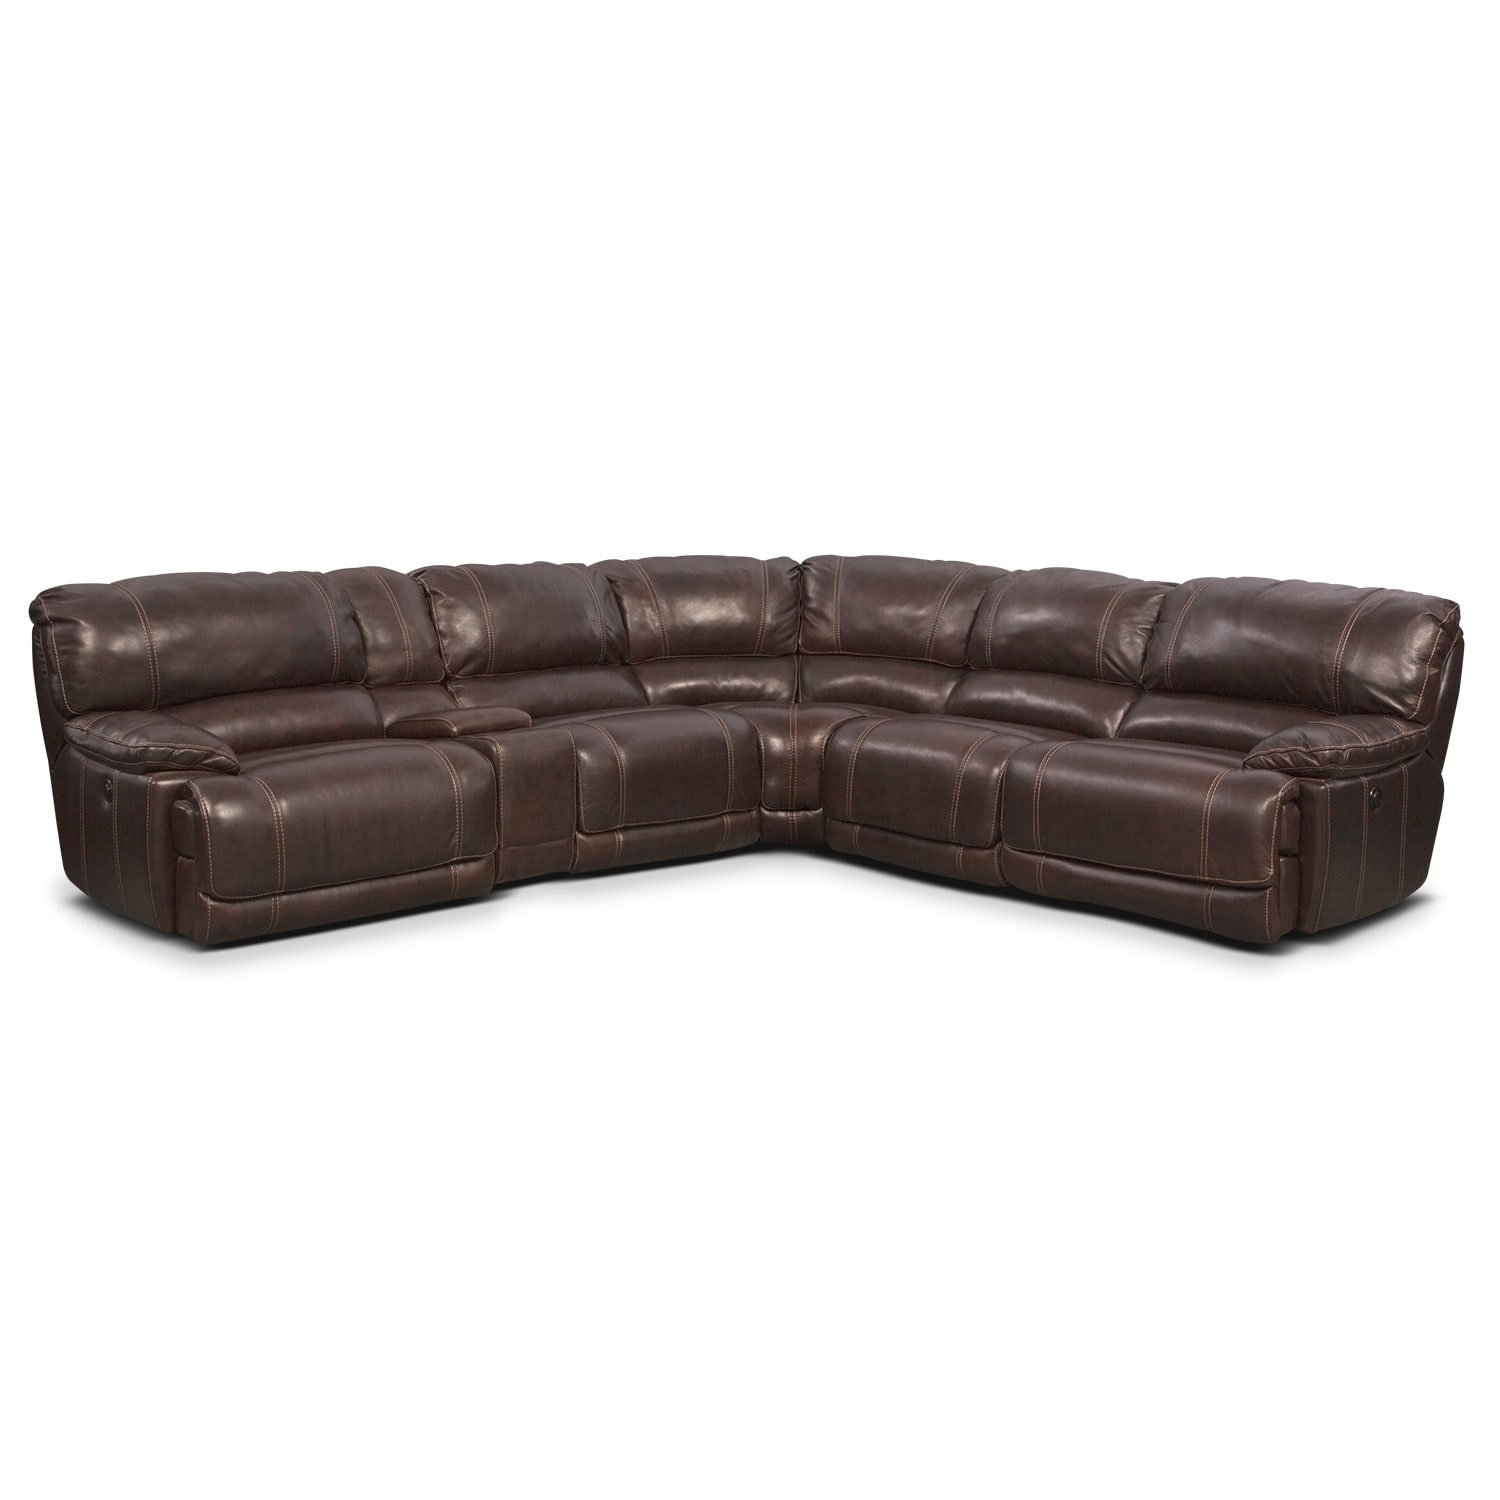 St. Malo 6-Piece Power Reclining Sectional with Modular Console - Brown